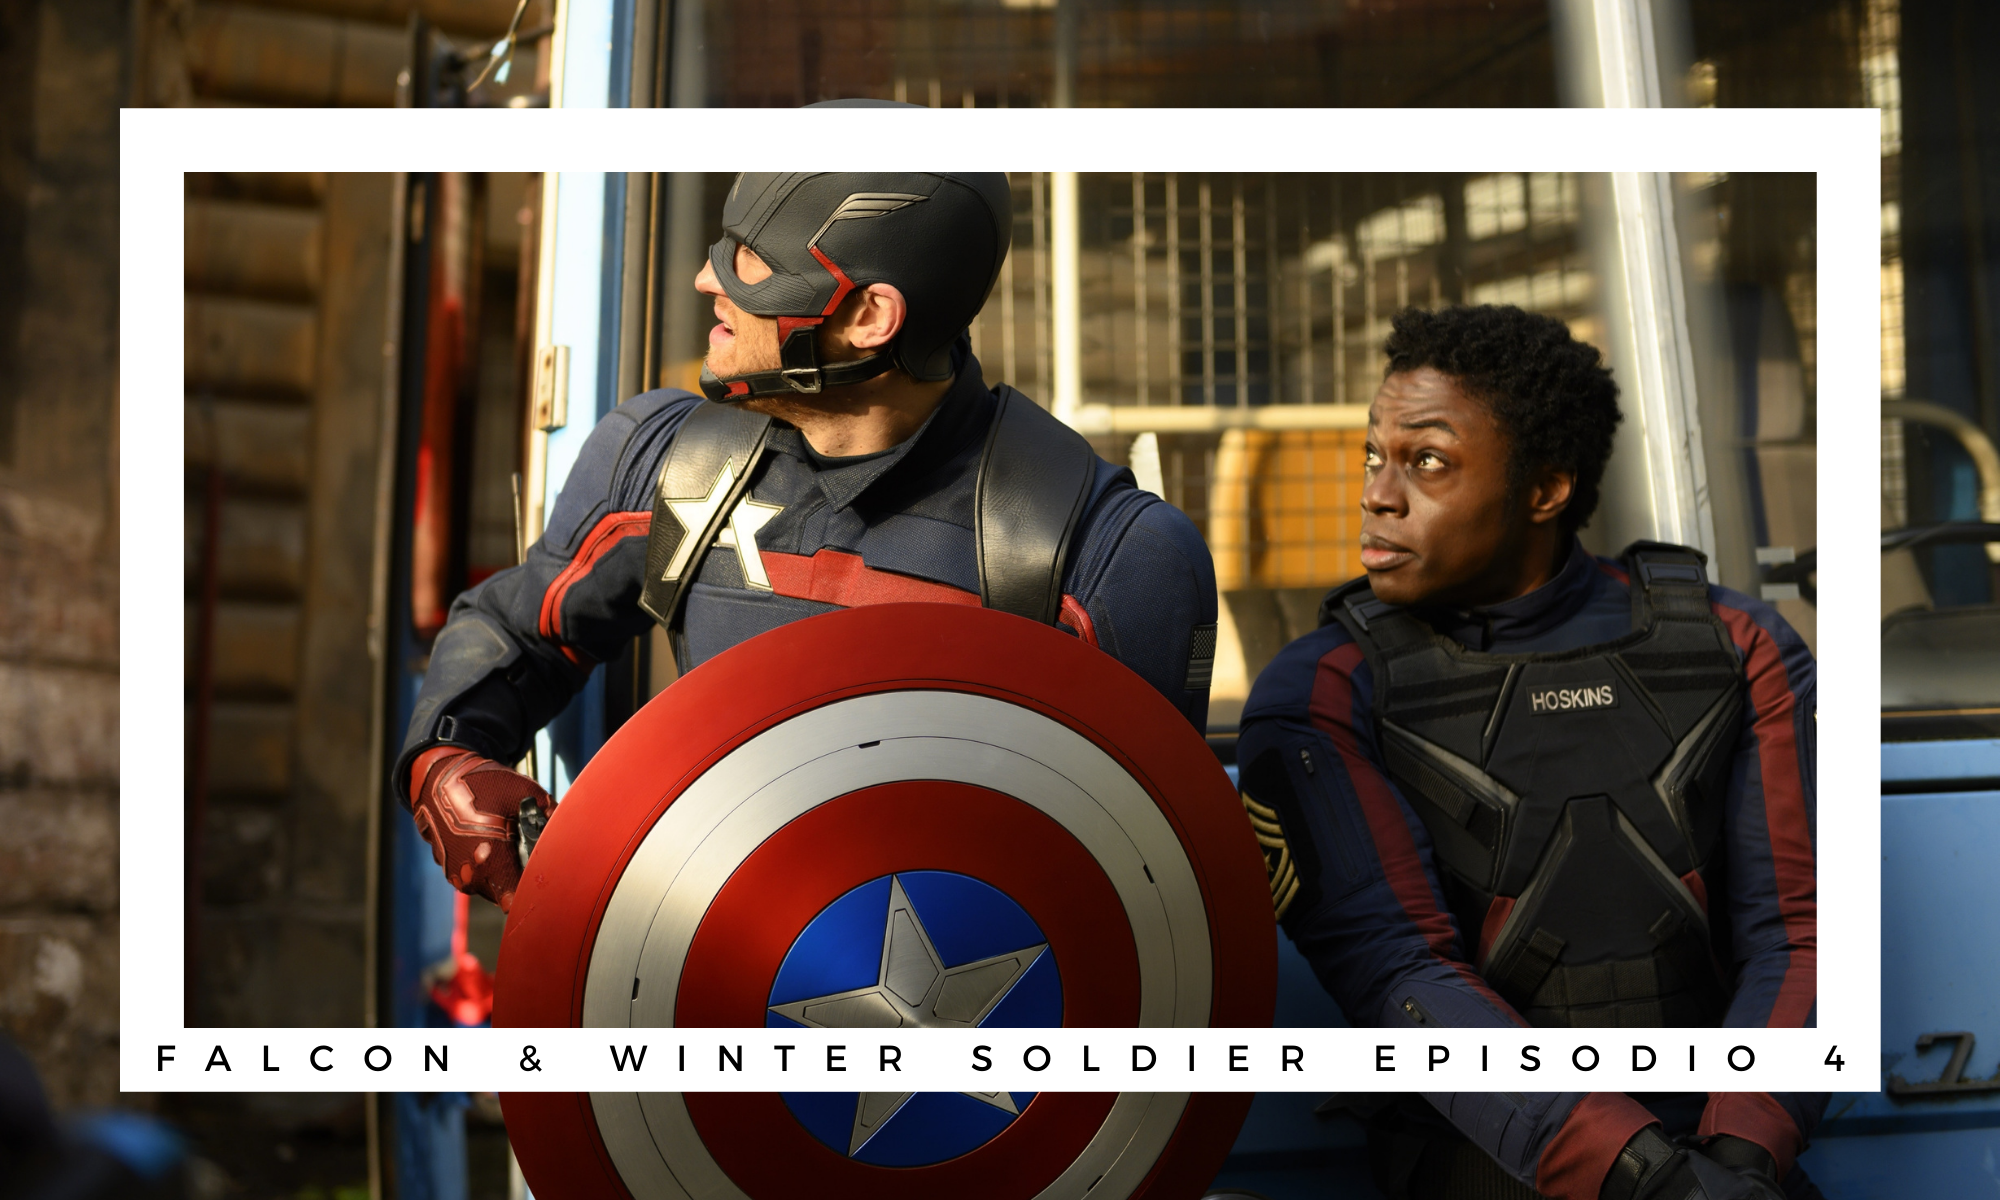 Il quarto episodio di The Falcon and the Winter Soldier